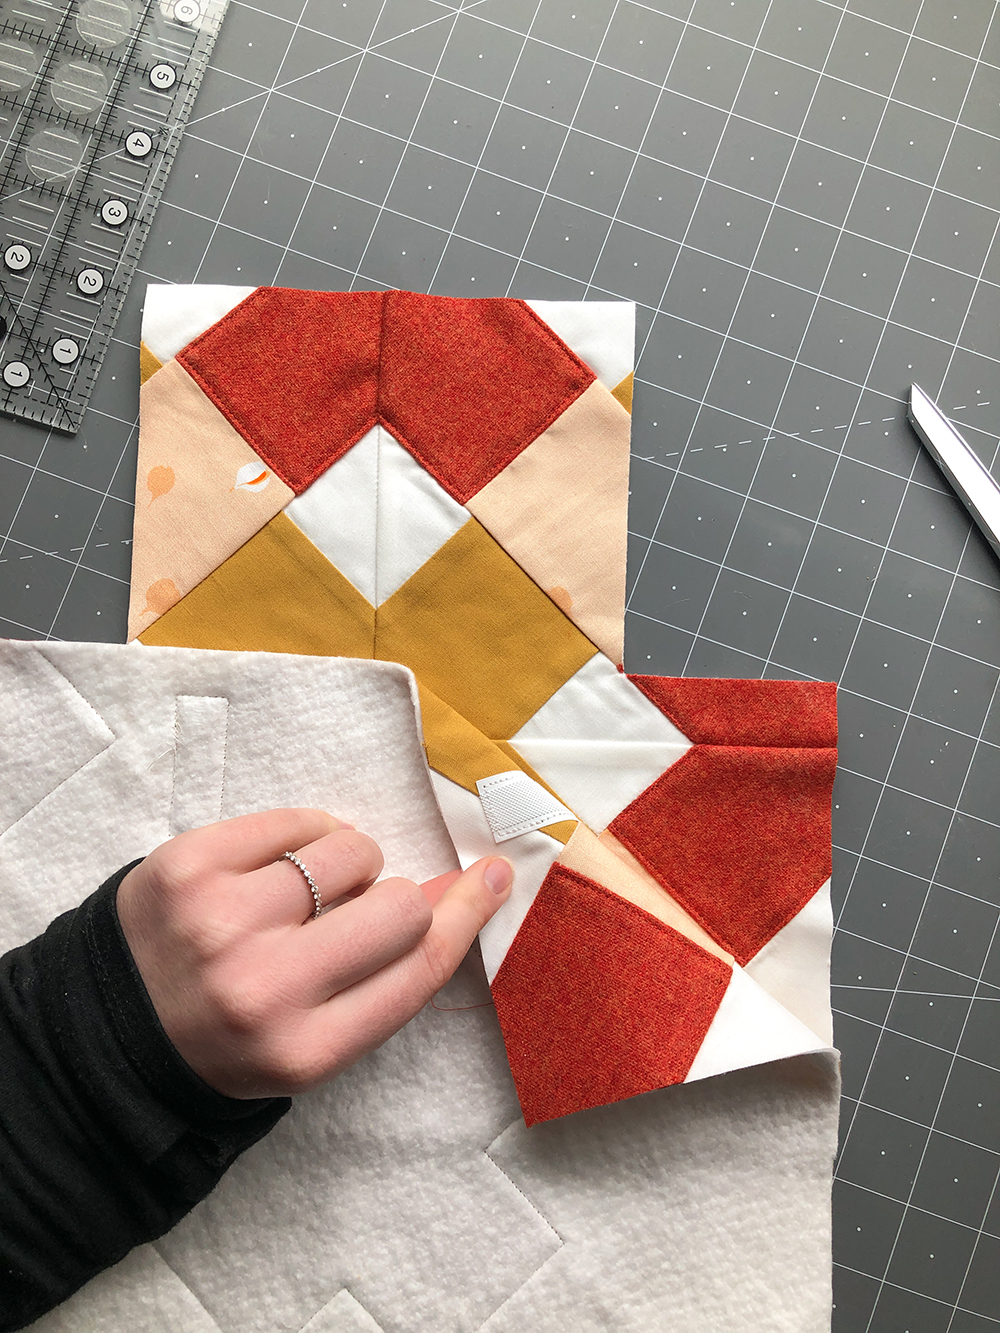 """Place the 4"""" loop-side pieces of velcro on the flap of your lining fabric, 0.5"""" from each edge of the flap. Stitch around the edge of the velcro to secure. Repeat for both pieces of loop-side velcro."""